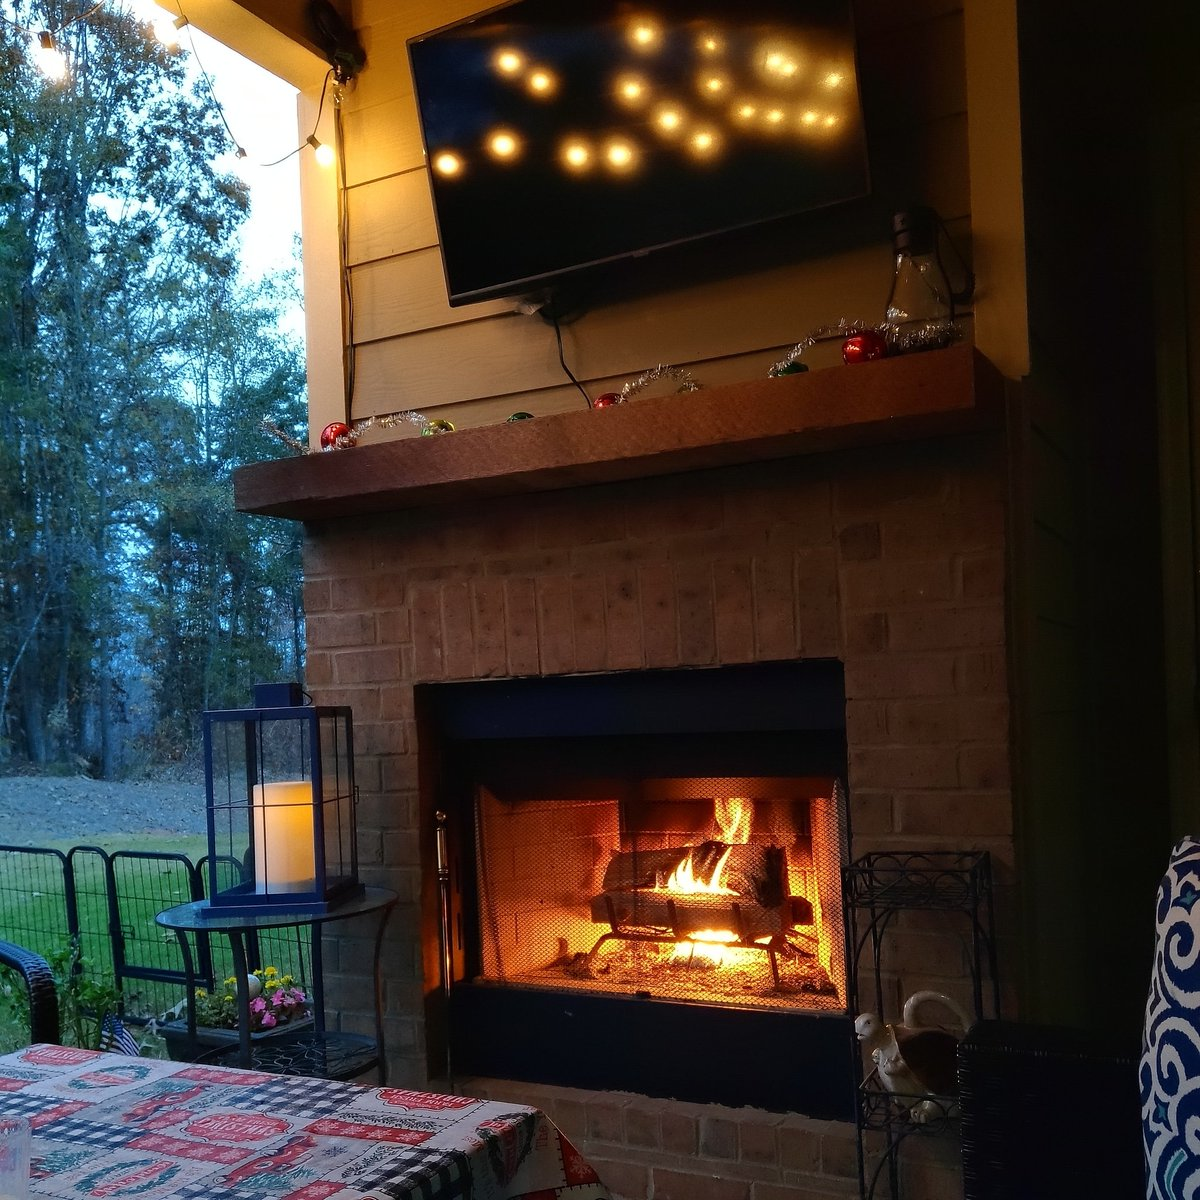 So peaceful and relaxing. ❤️  As we have therefore opportunity, let us do good unto all men, especially unto them who are of the household of faith. Galatians 6:10 KJV #fire #patio #relaxing #peaceful #time #home #goodvibes https://t.co/ZDf5A9b0Oy